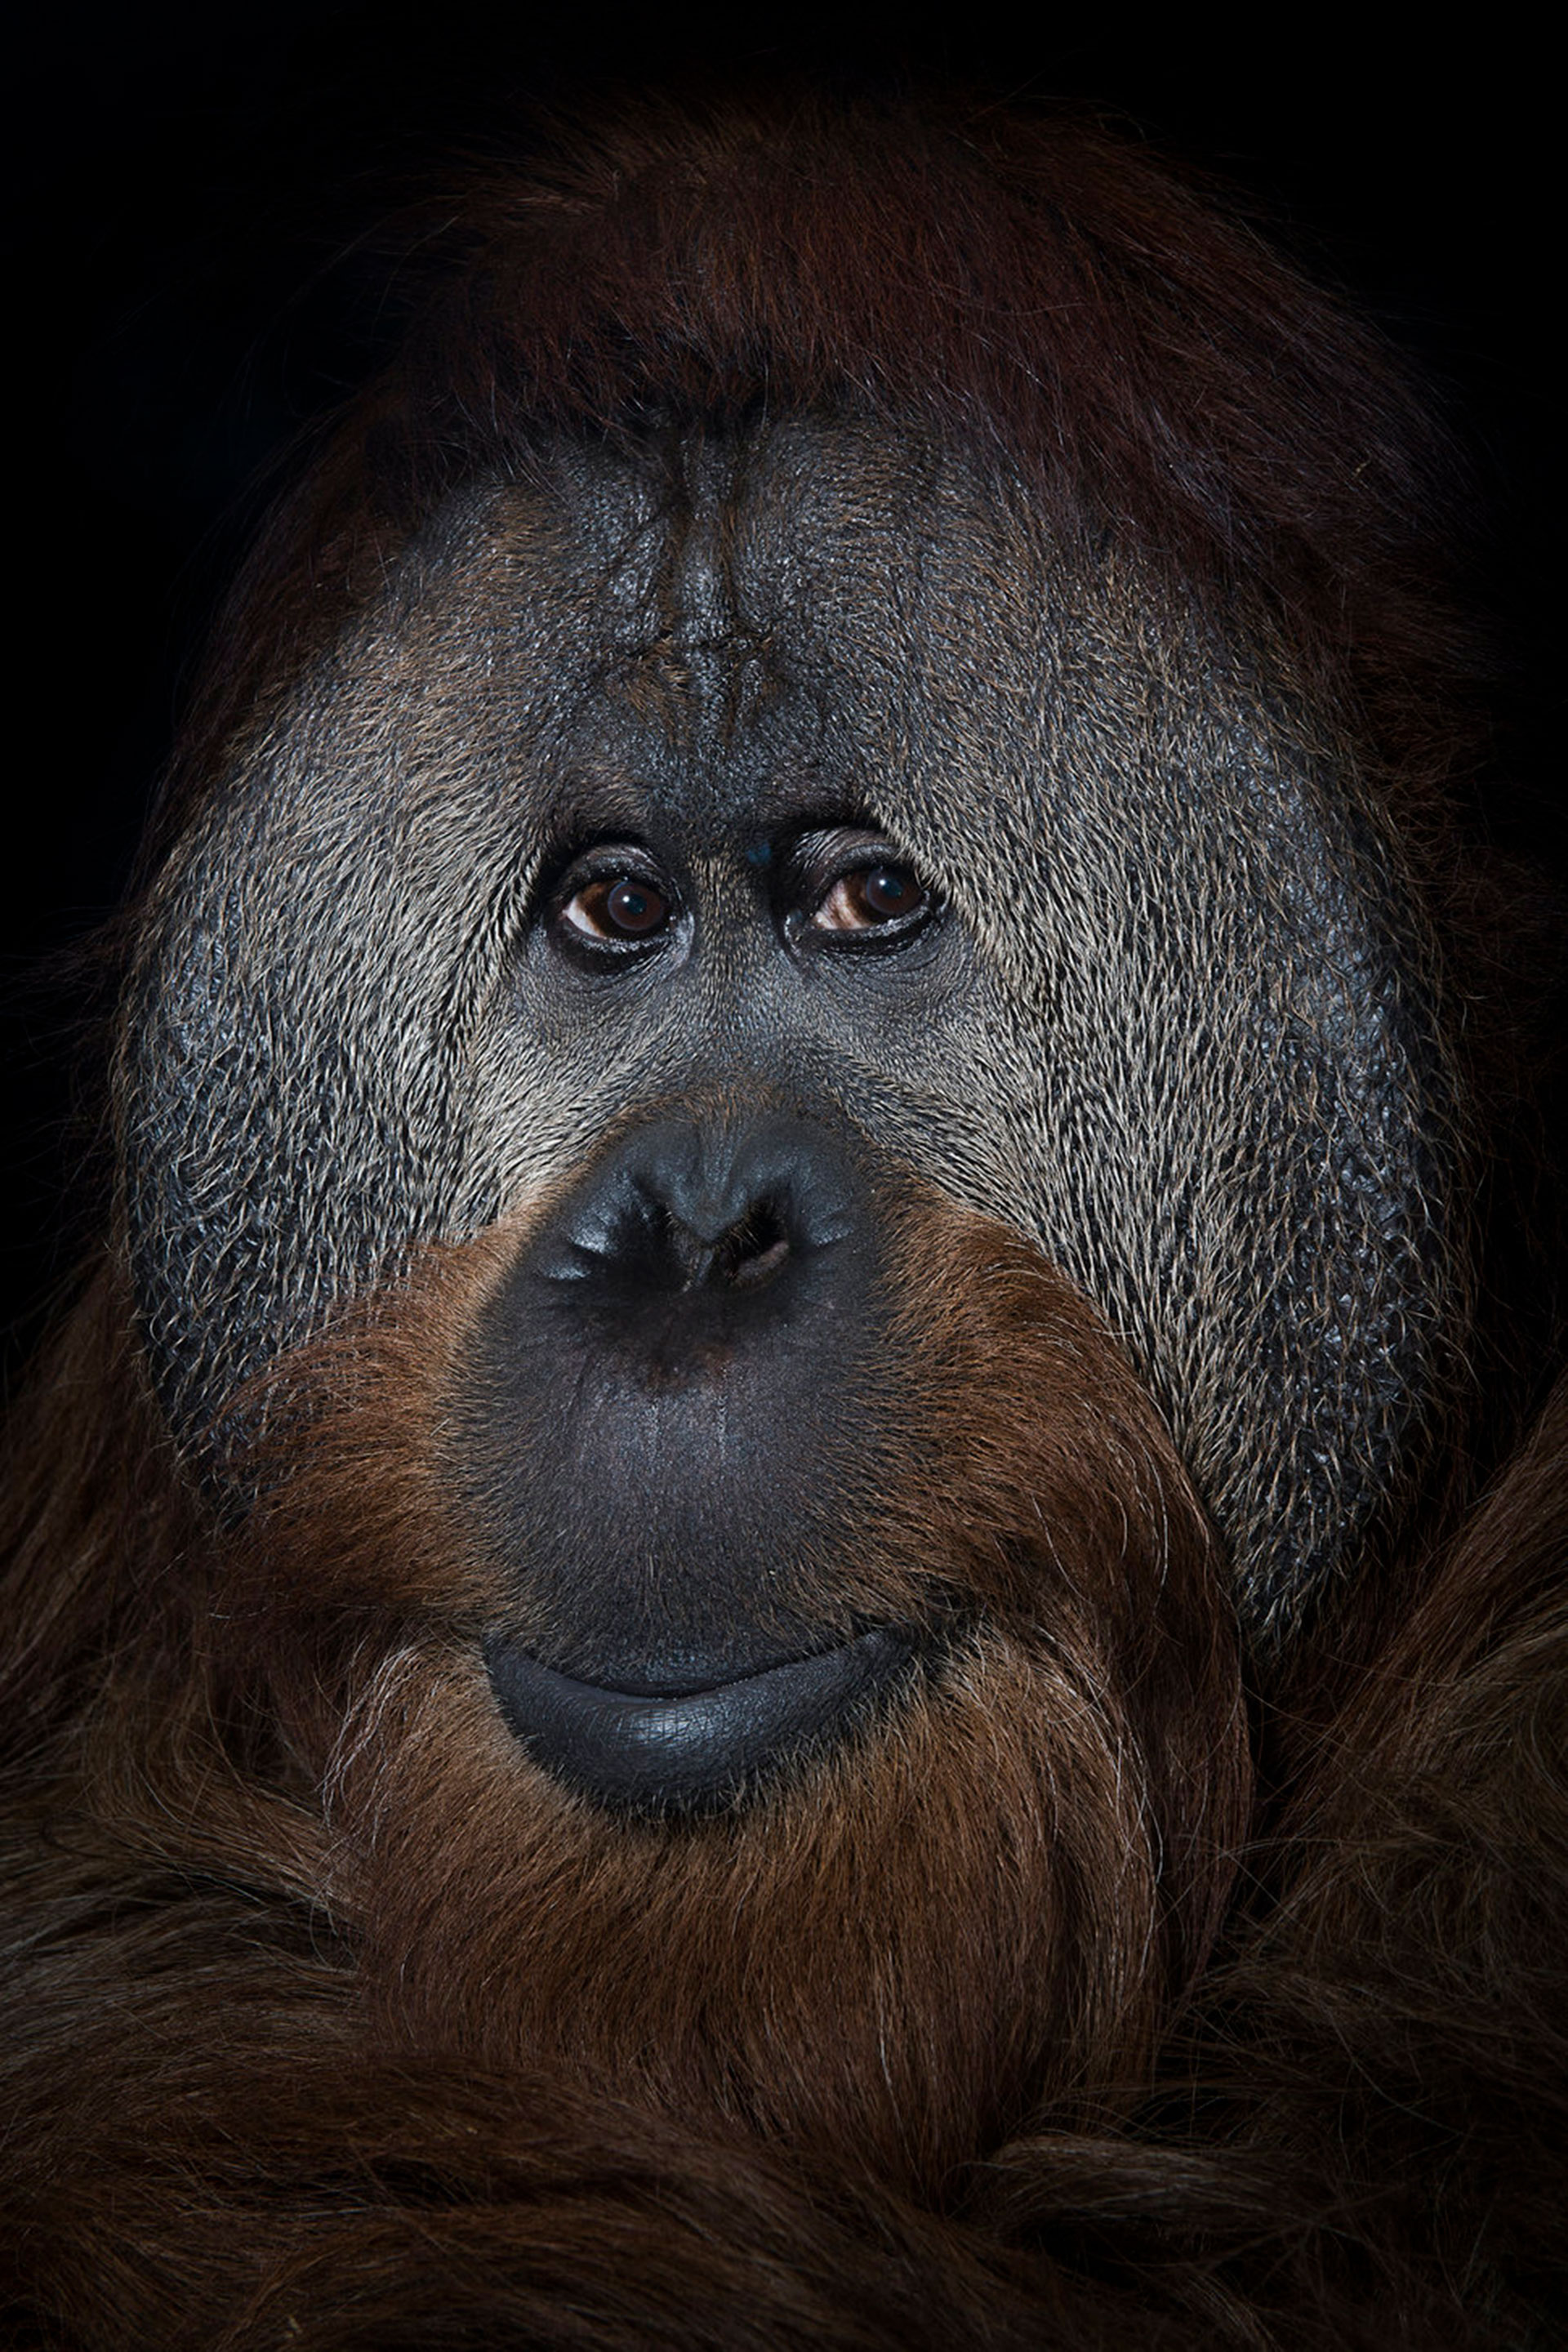 "Competencia ""Profesional"" – Categoría ""Naturaleza y Vida Silvestre"": Un orangután de 40 años llamado Azy en el Simon Skjodt International Orangutan Center en Indianápolis, Indiana. (Gentileza Sony World Photography Awards)"